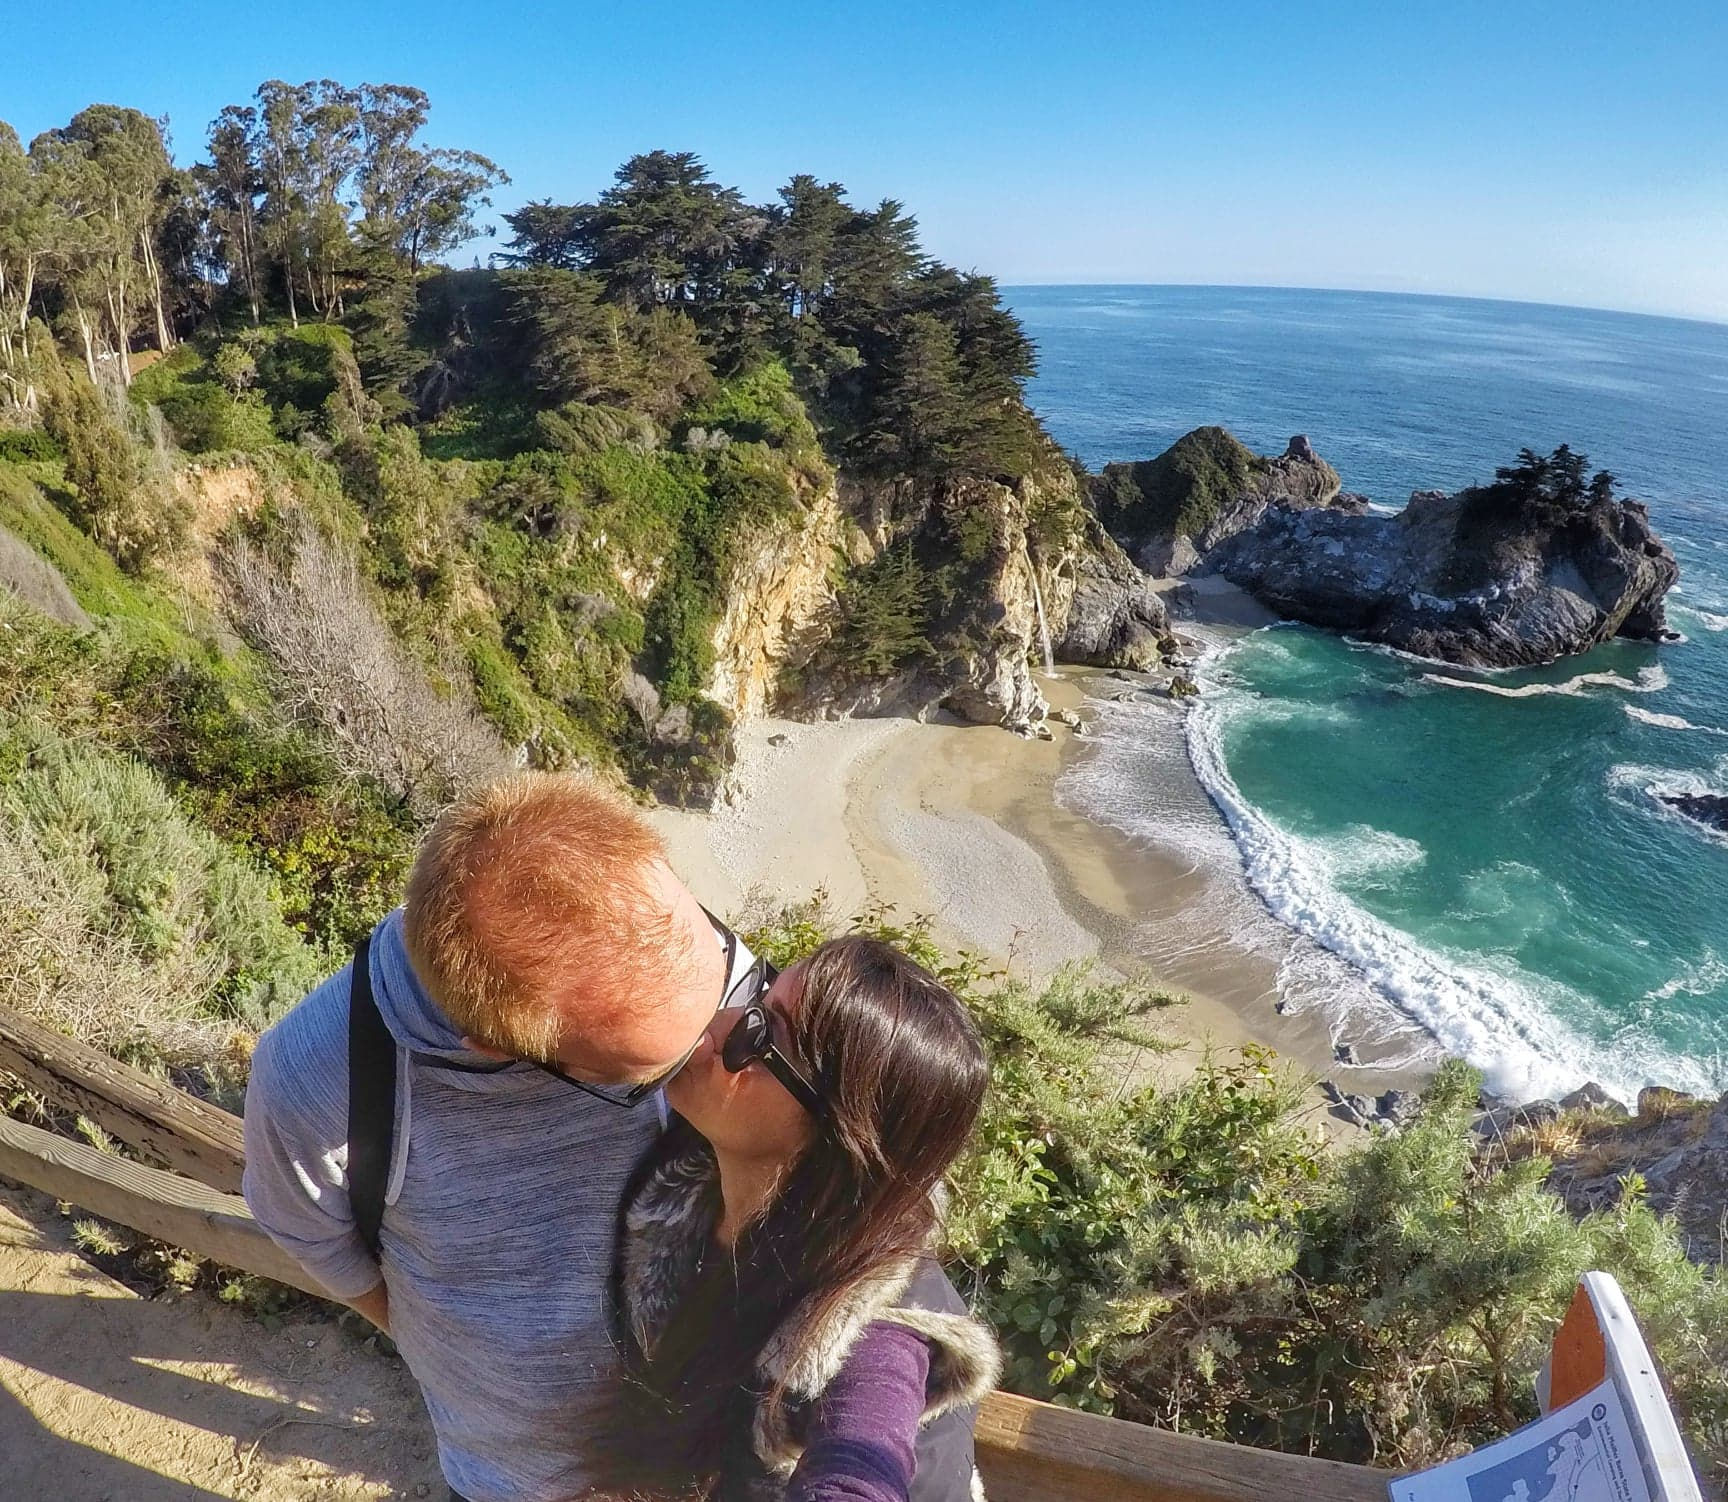 Romantic Places Northern California: 5 Northern California Getaways For Couples